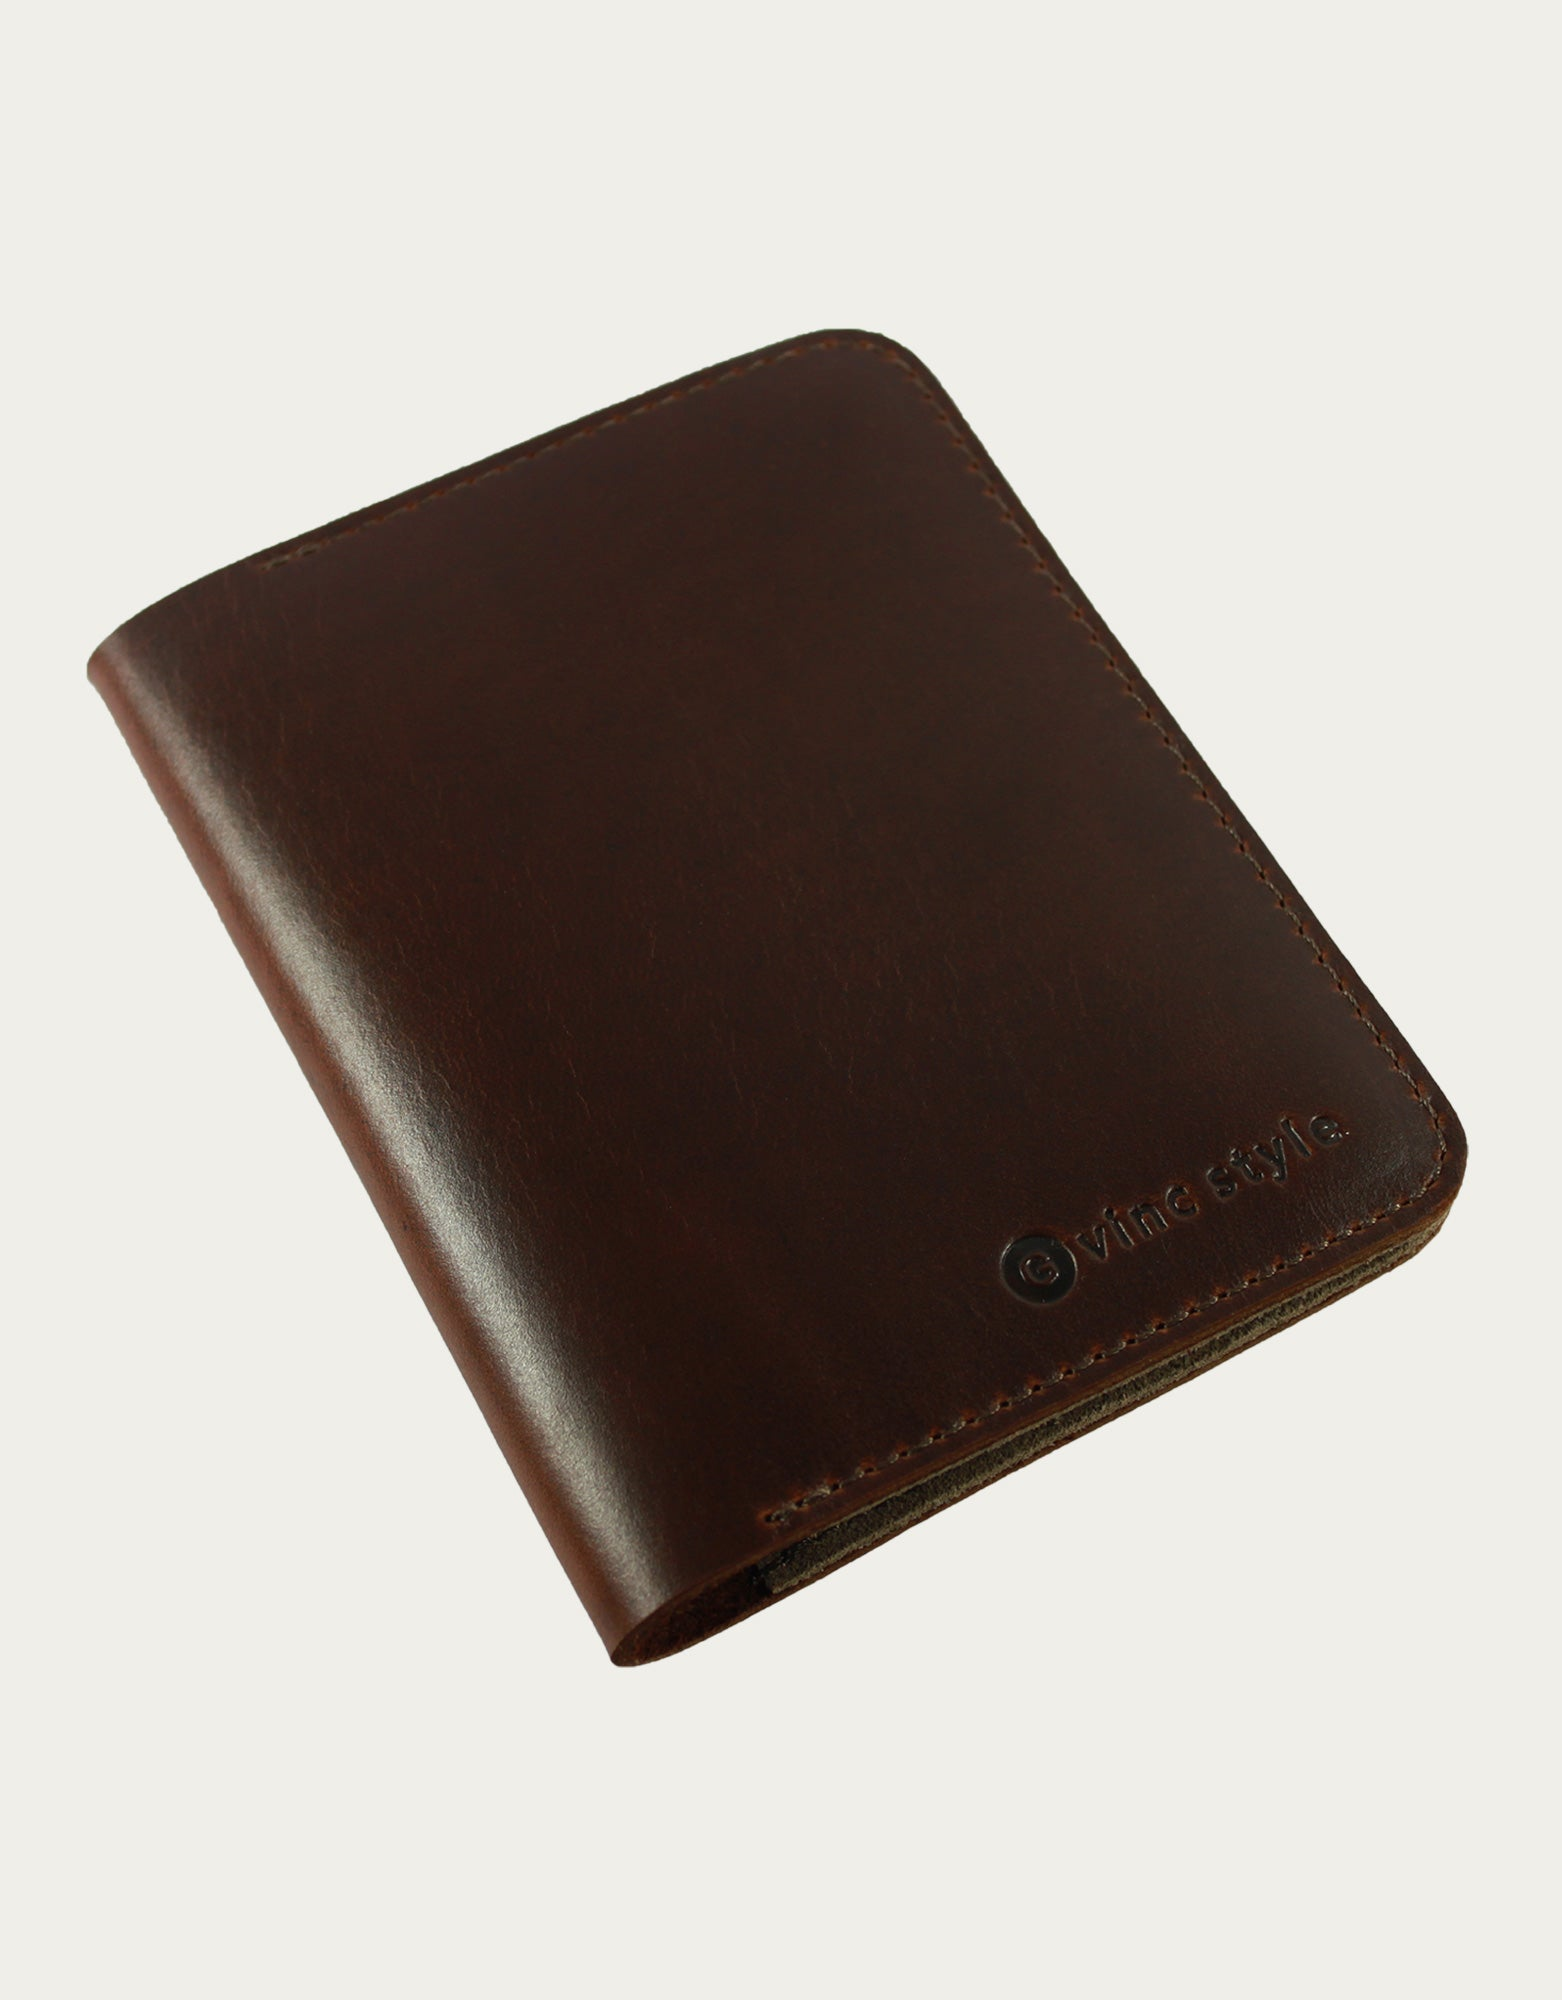 Torta Passport Holder - Dark Brown